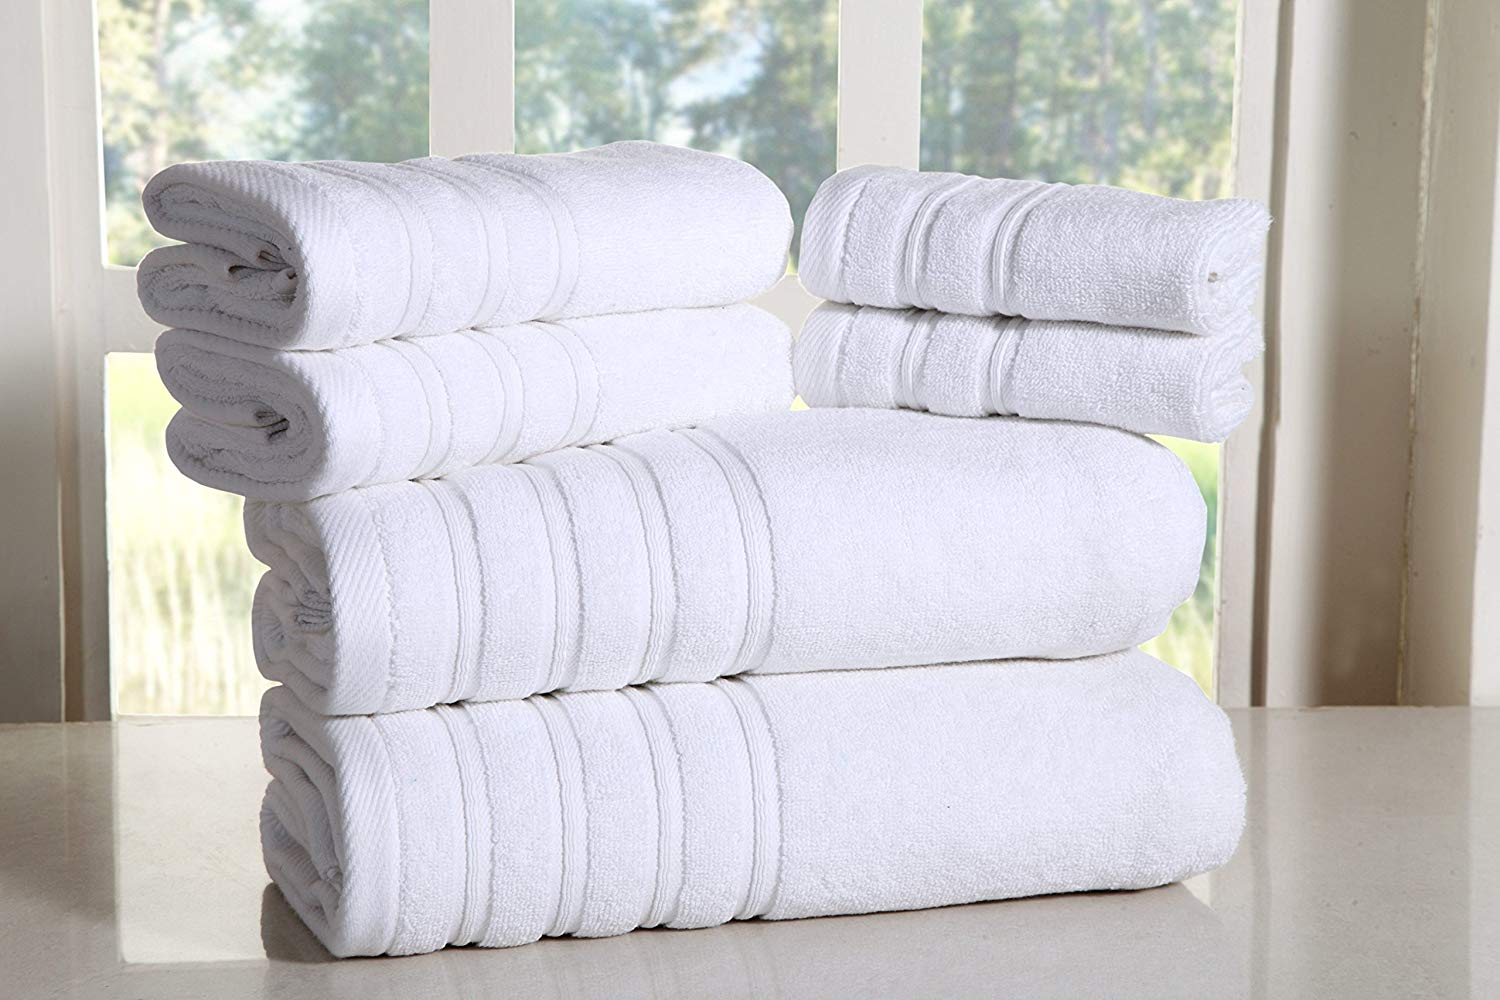 Bed Bath Fashions Fade-Resistant 100% Cotton 6-Piece Towel Set, Hotel Quality Bath Hand Wash Towels, Luxury Super Soft and Highly Absorbent Bathroom Towels (White)